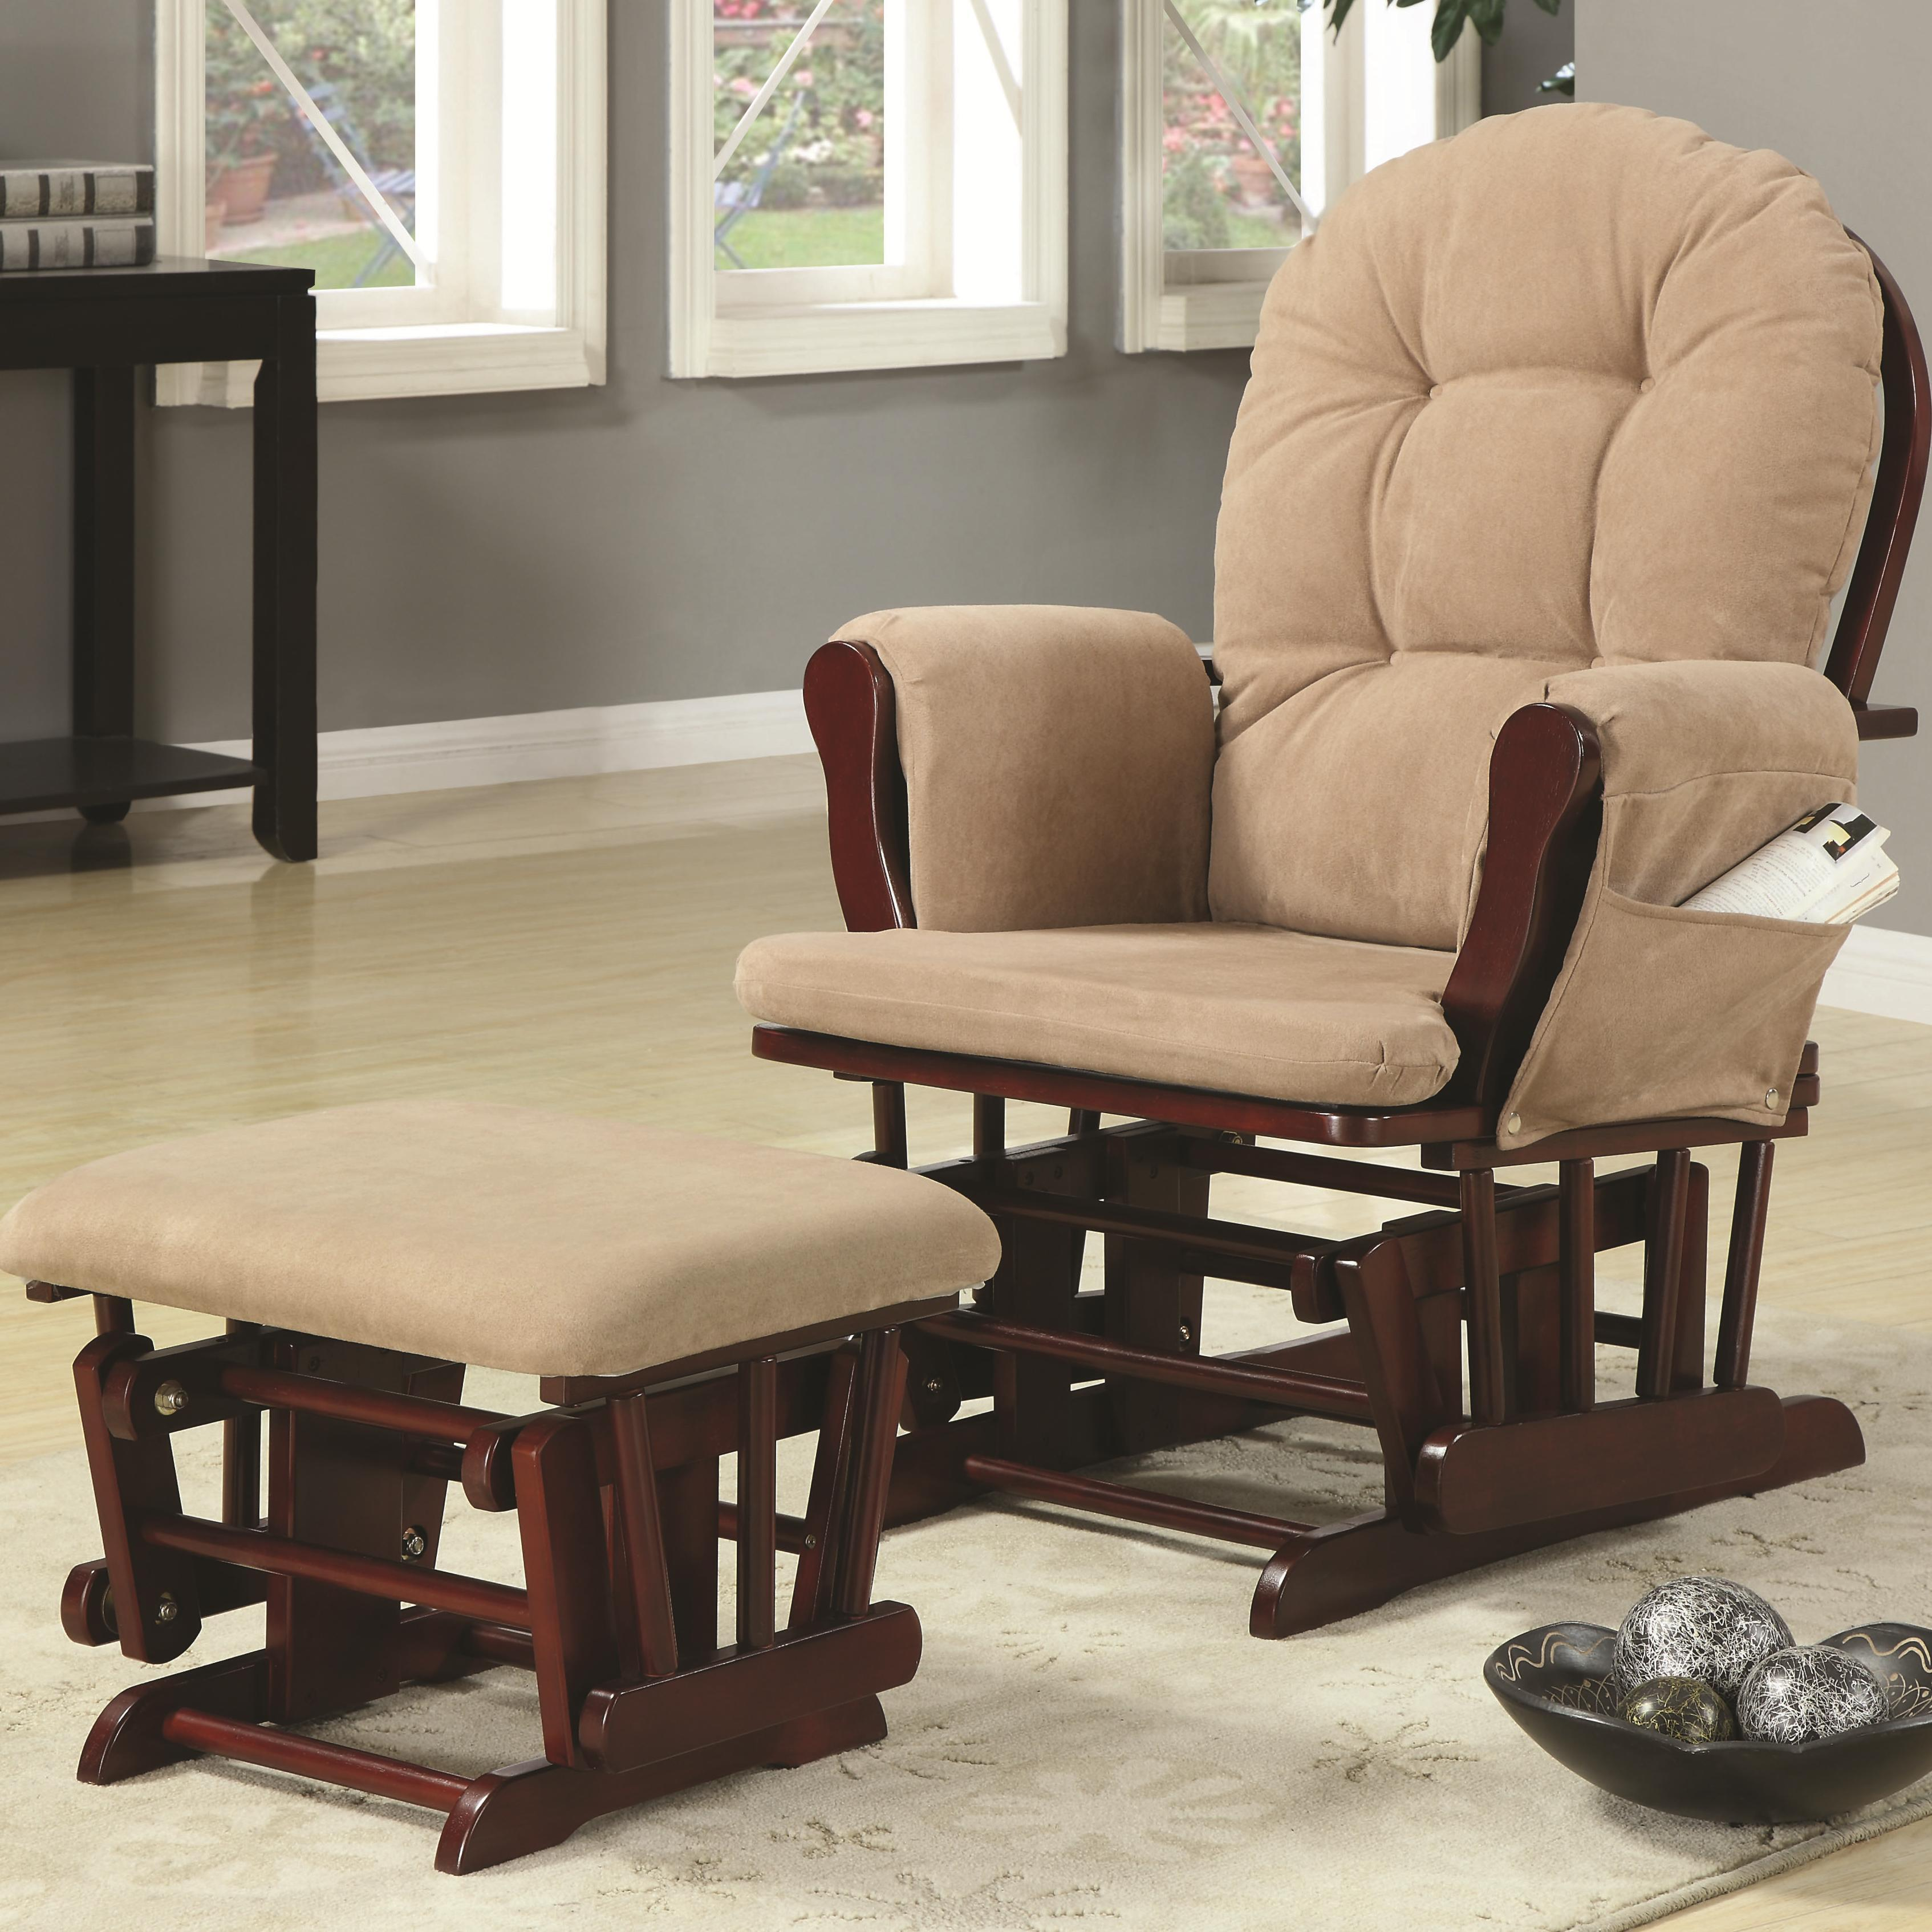 Coaster Rockers Rocking Chair - Item Number: 650010